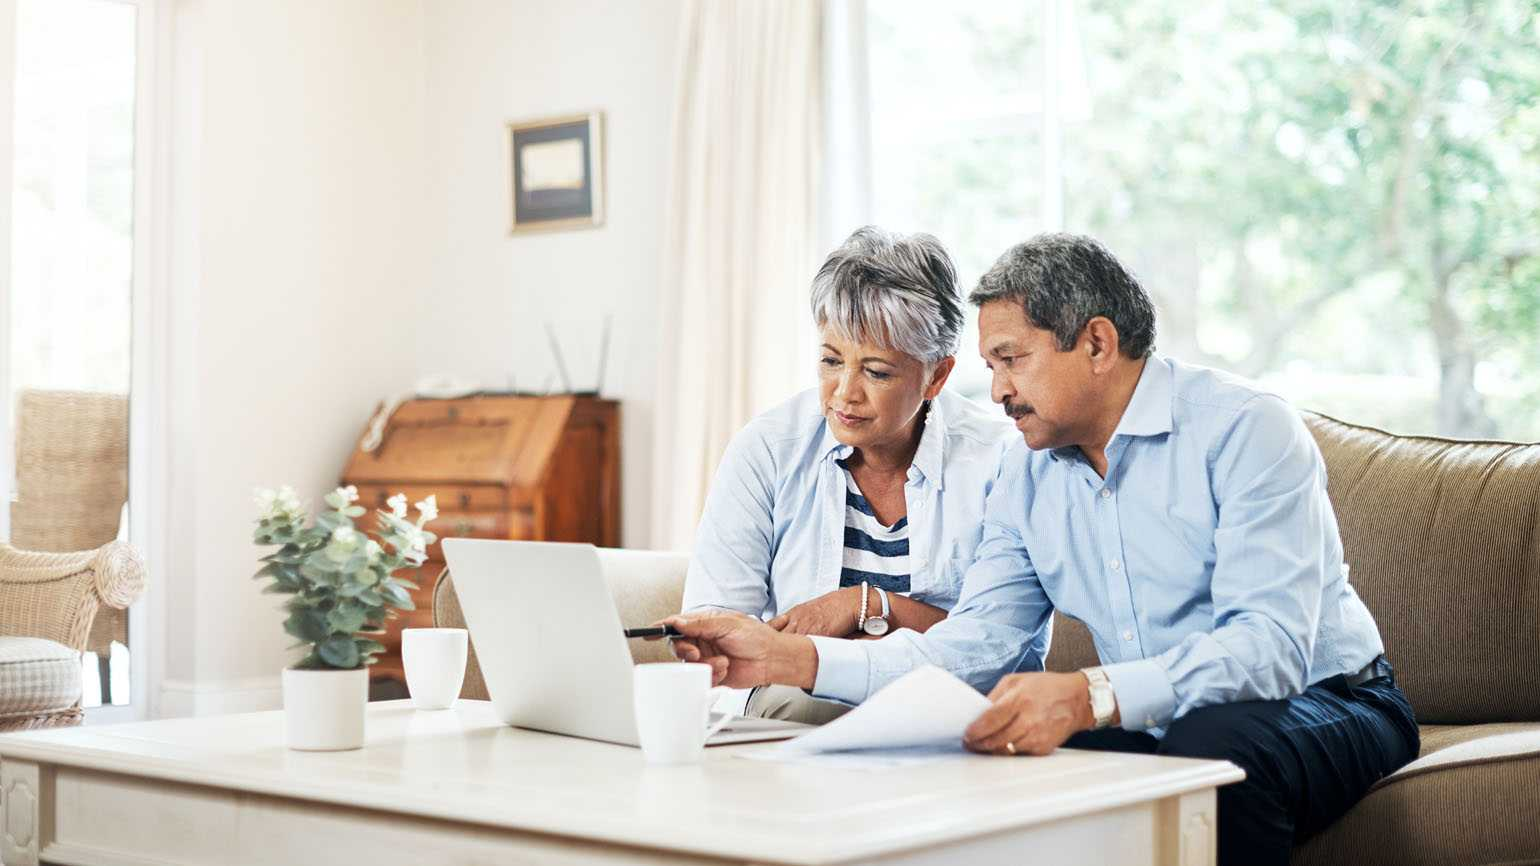 A aging couple planning their finances on a laptop in their home.